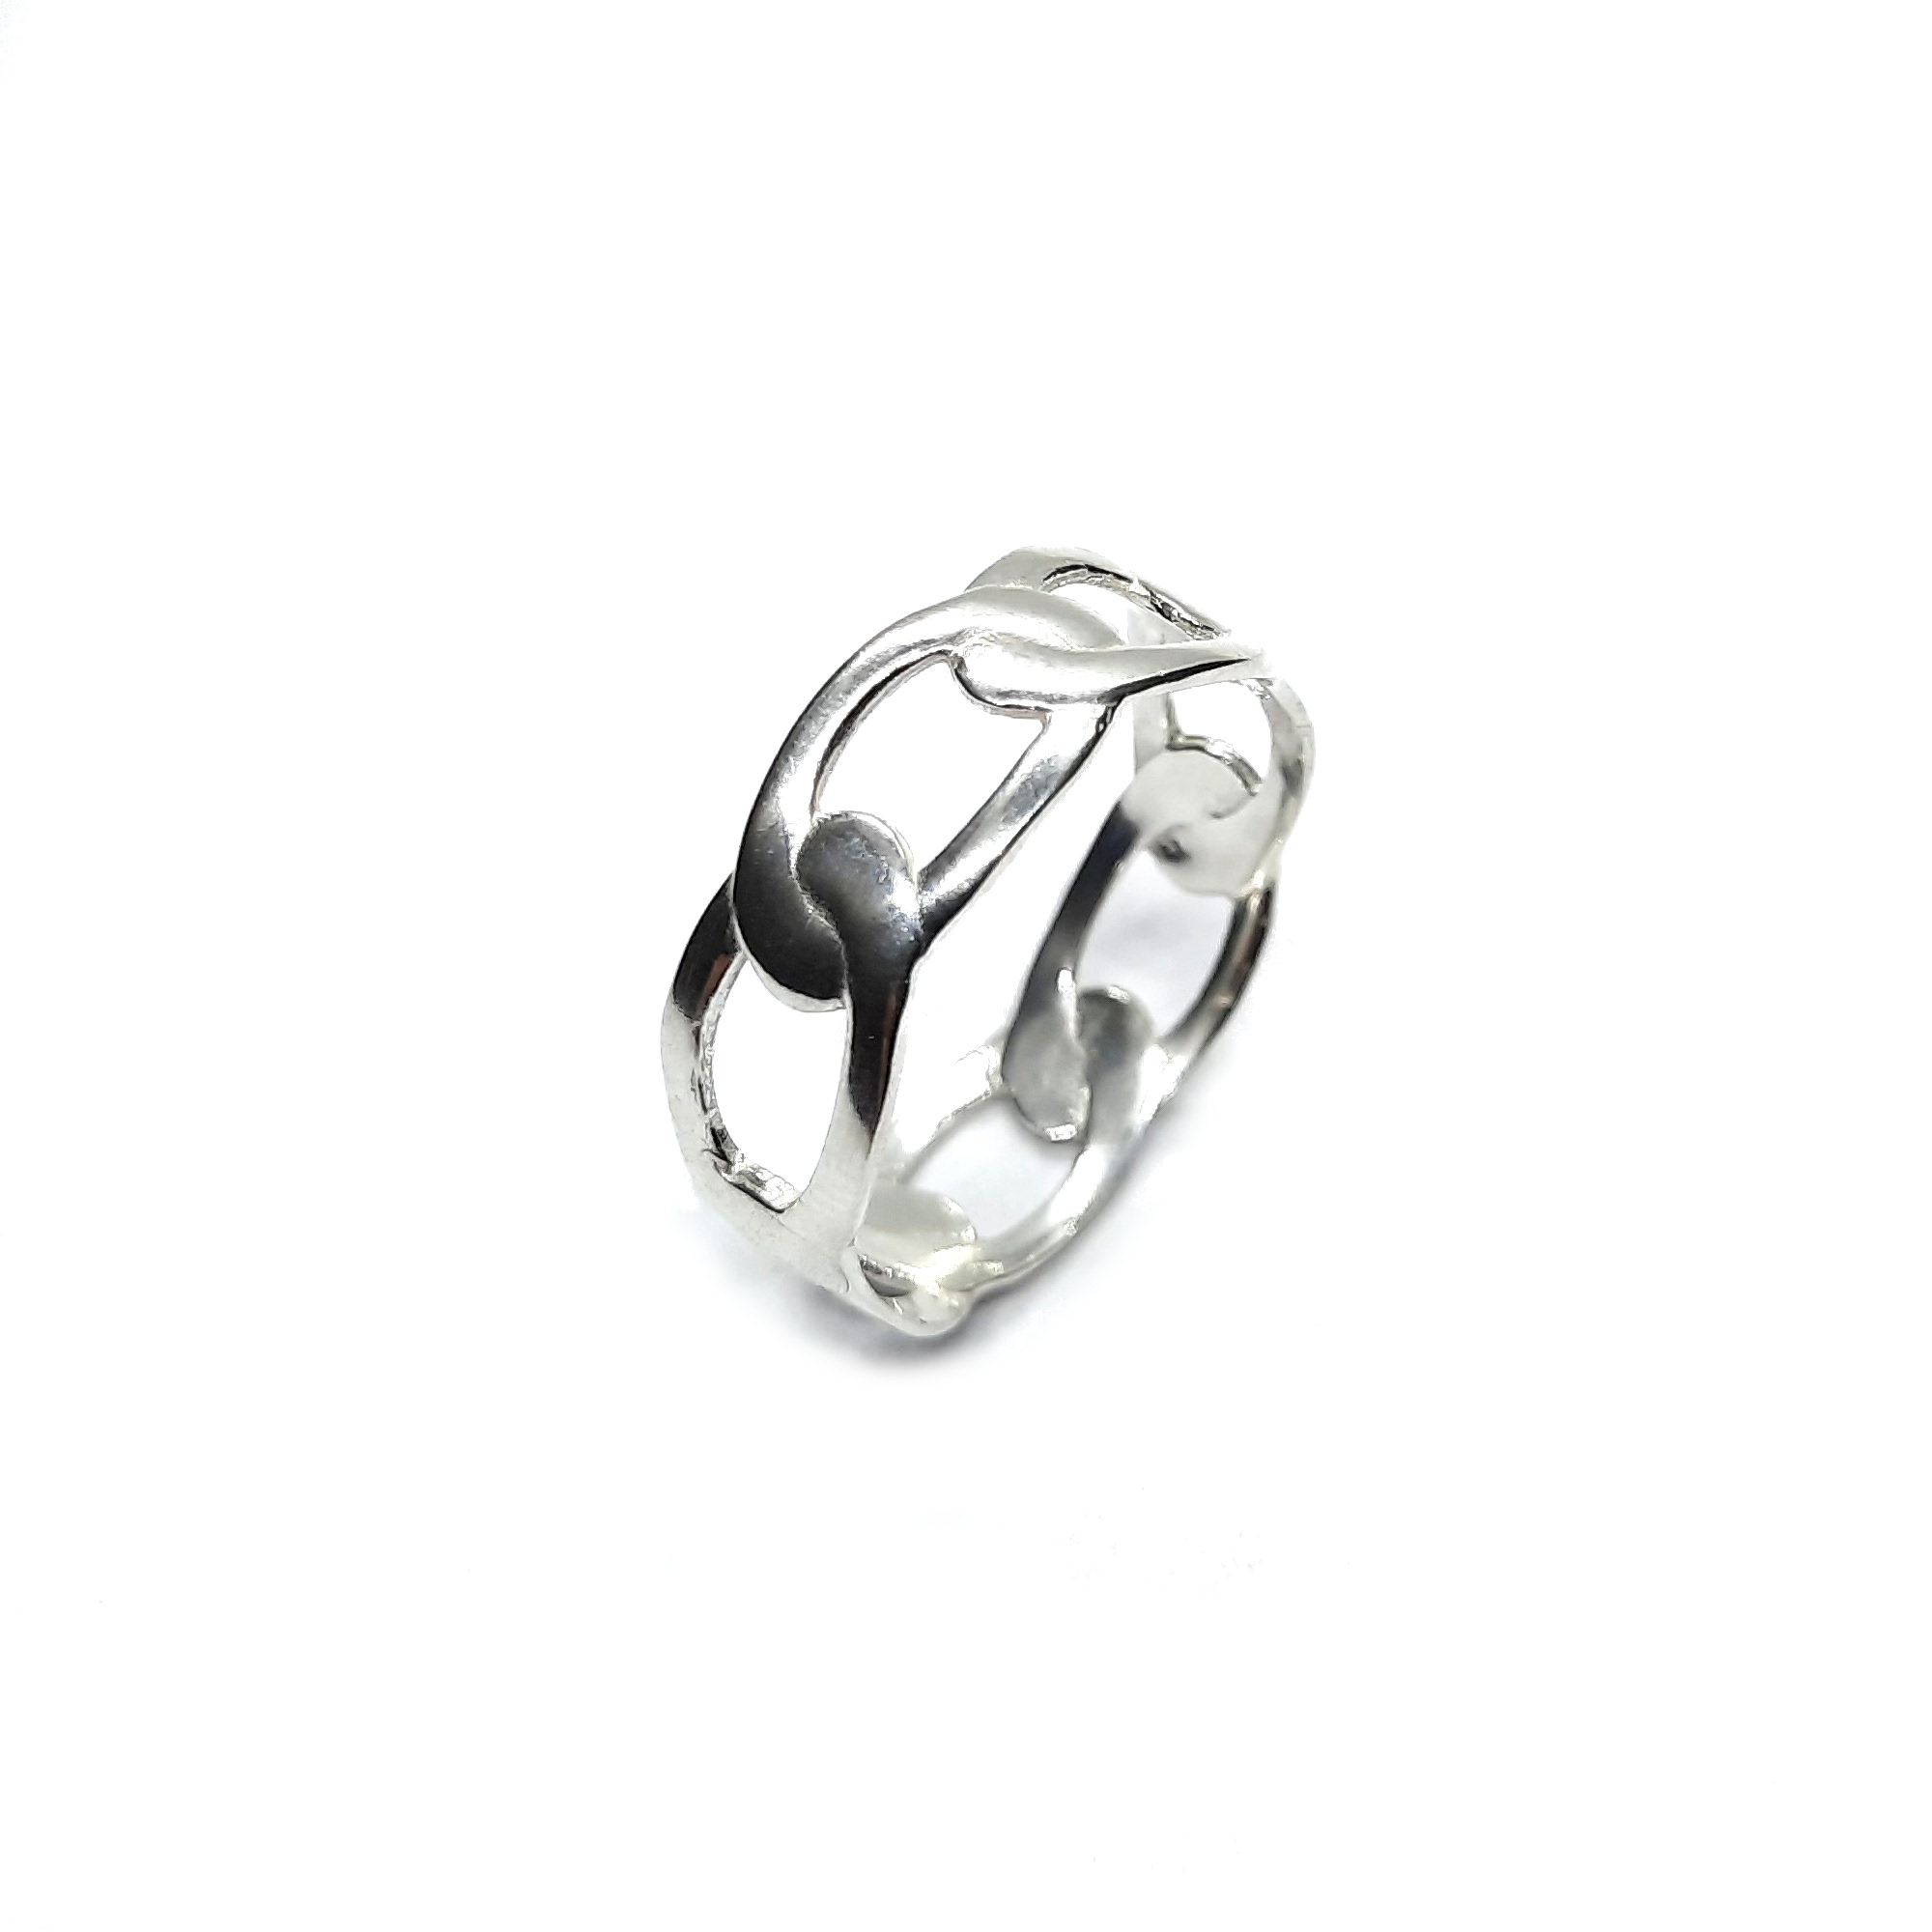 Silver ring - R002227